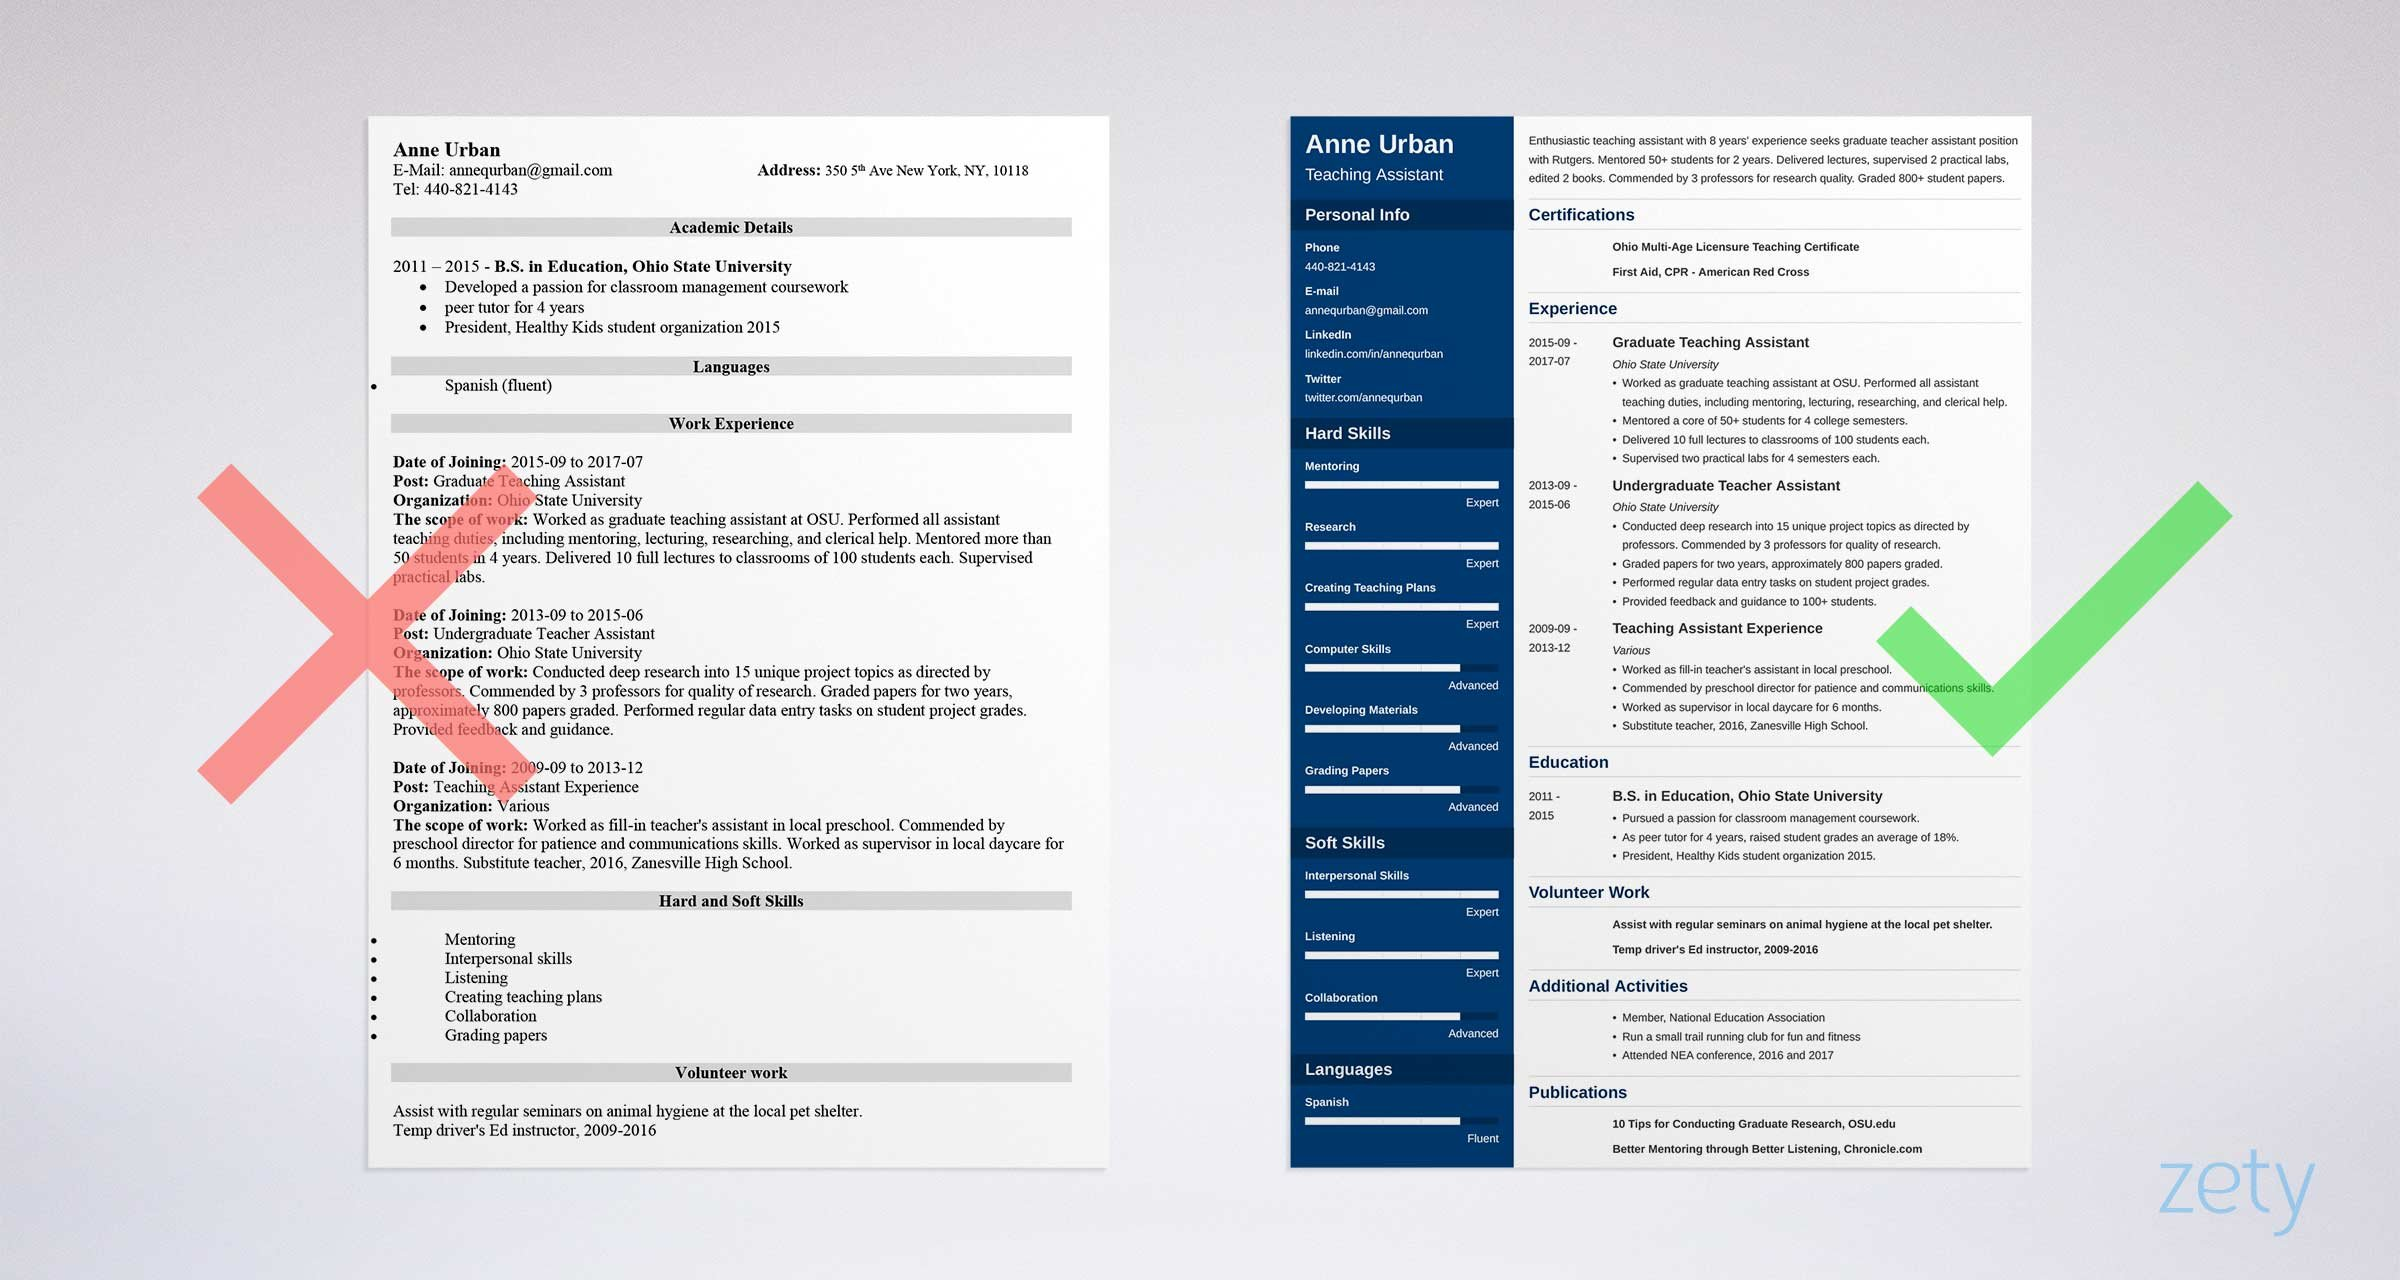 Best Font For Resume Size Standard Amp Professional Pairings